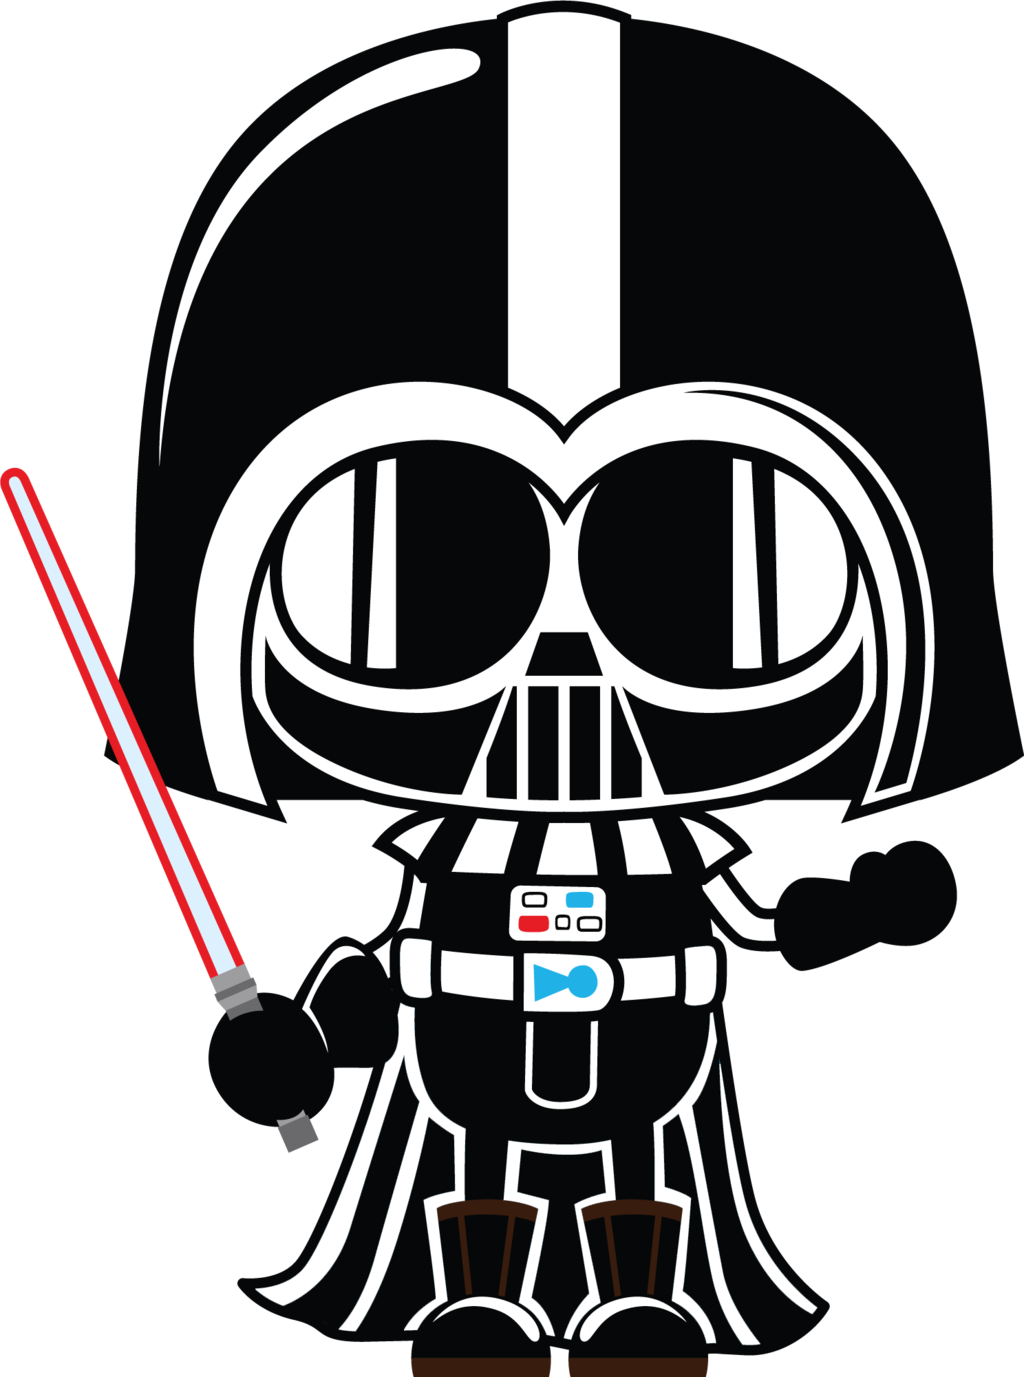 Darth vader clipart cartoon. By chrispix deviantart com